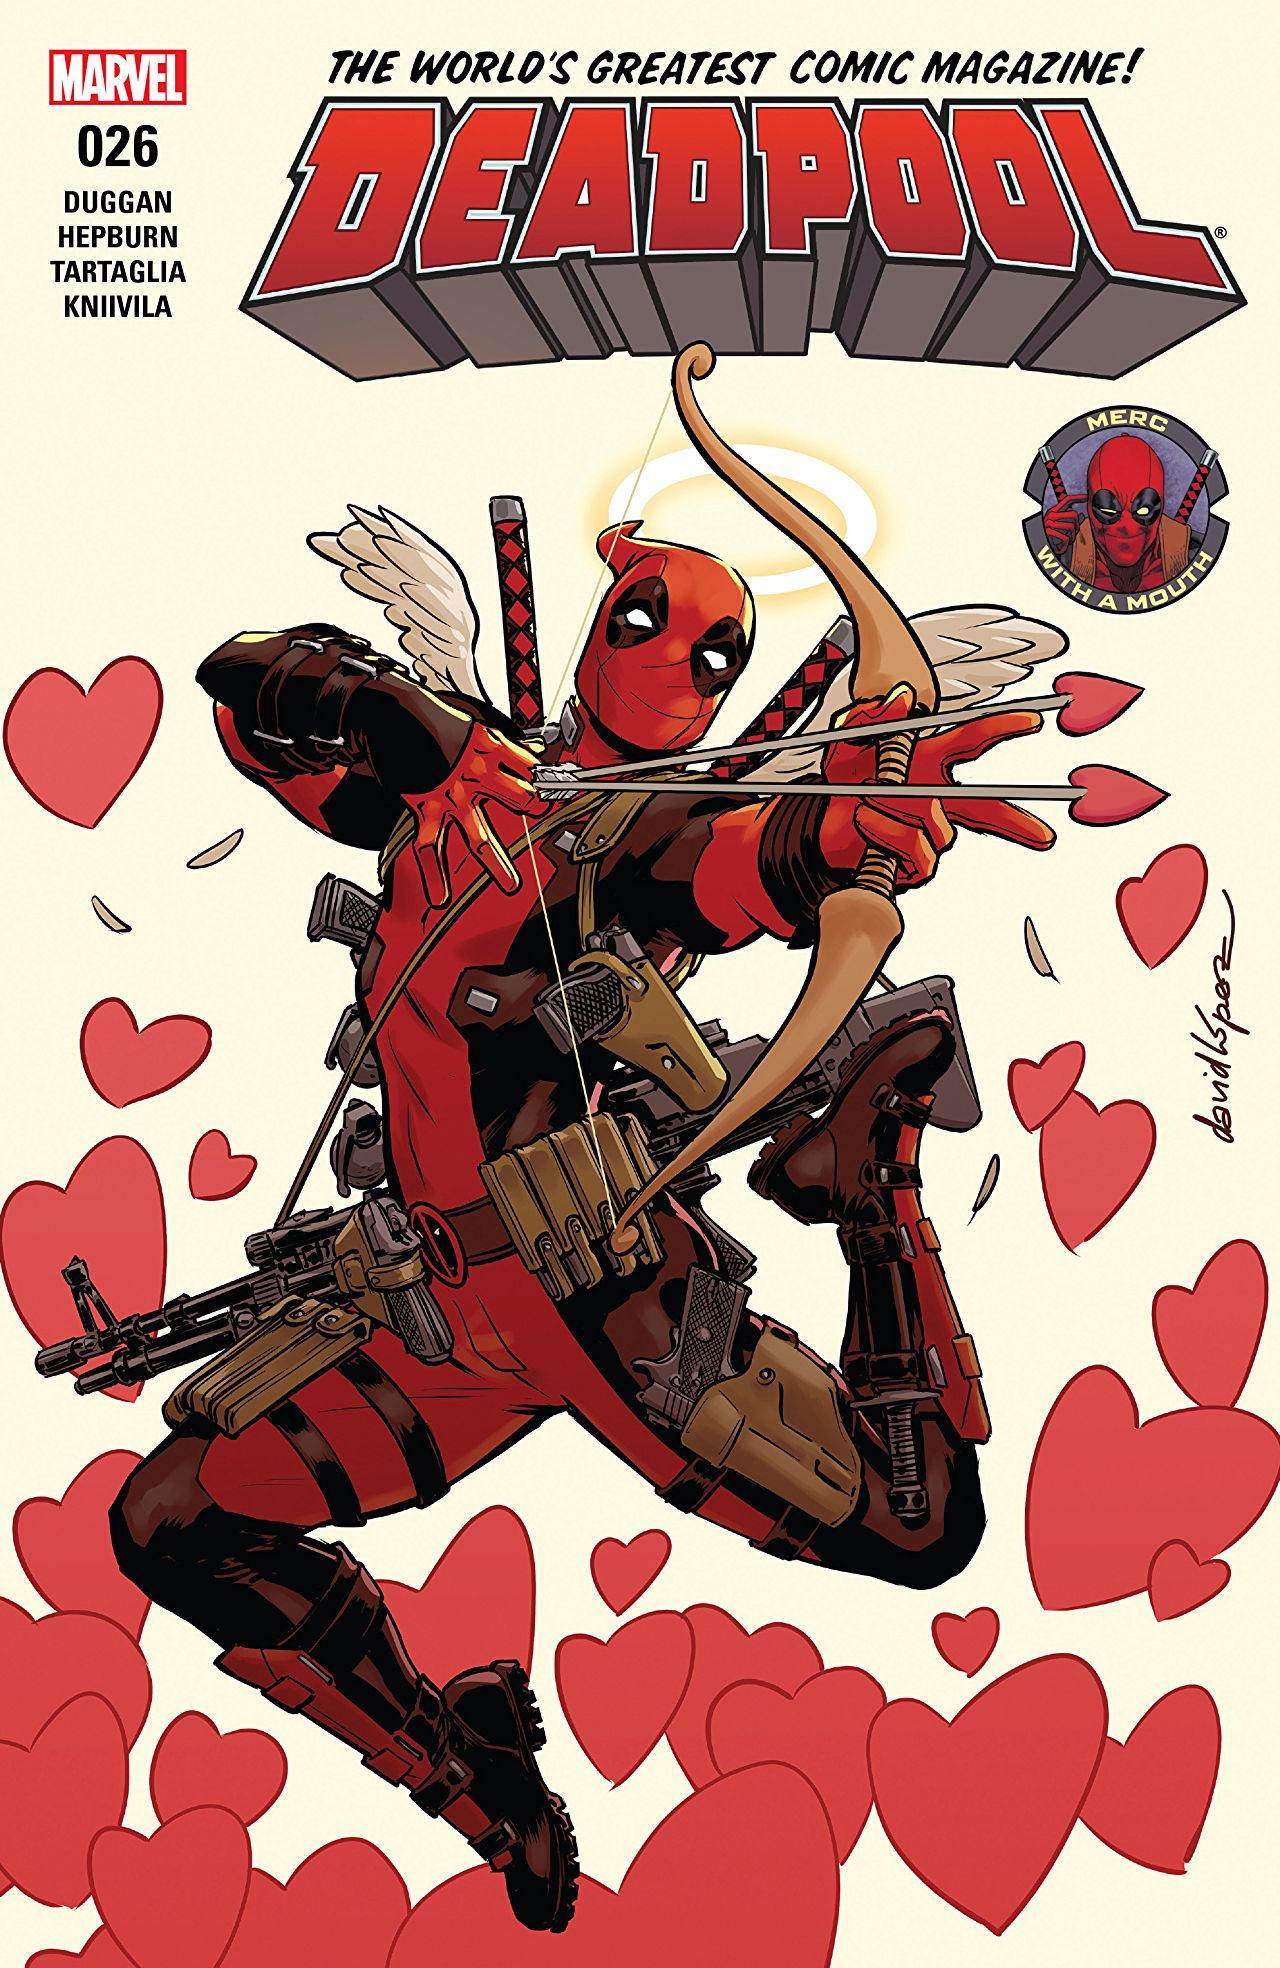 Deadpool vol. 3 #26